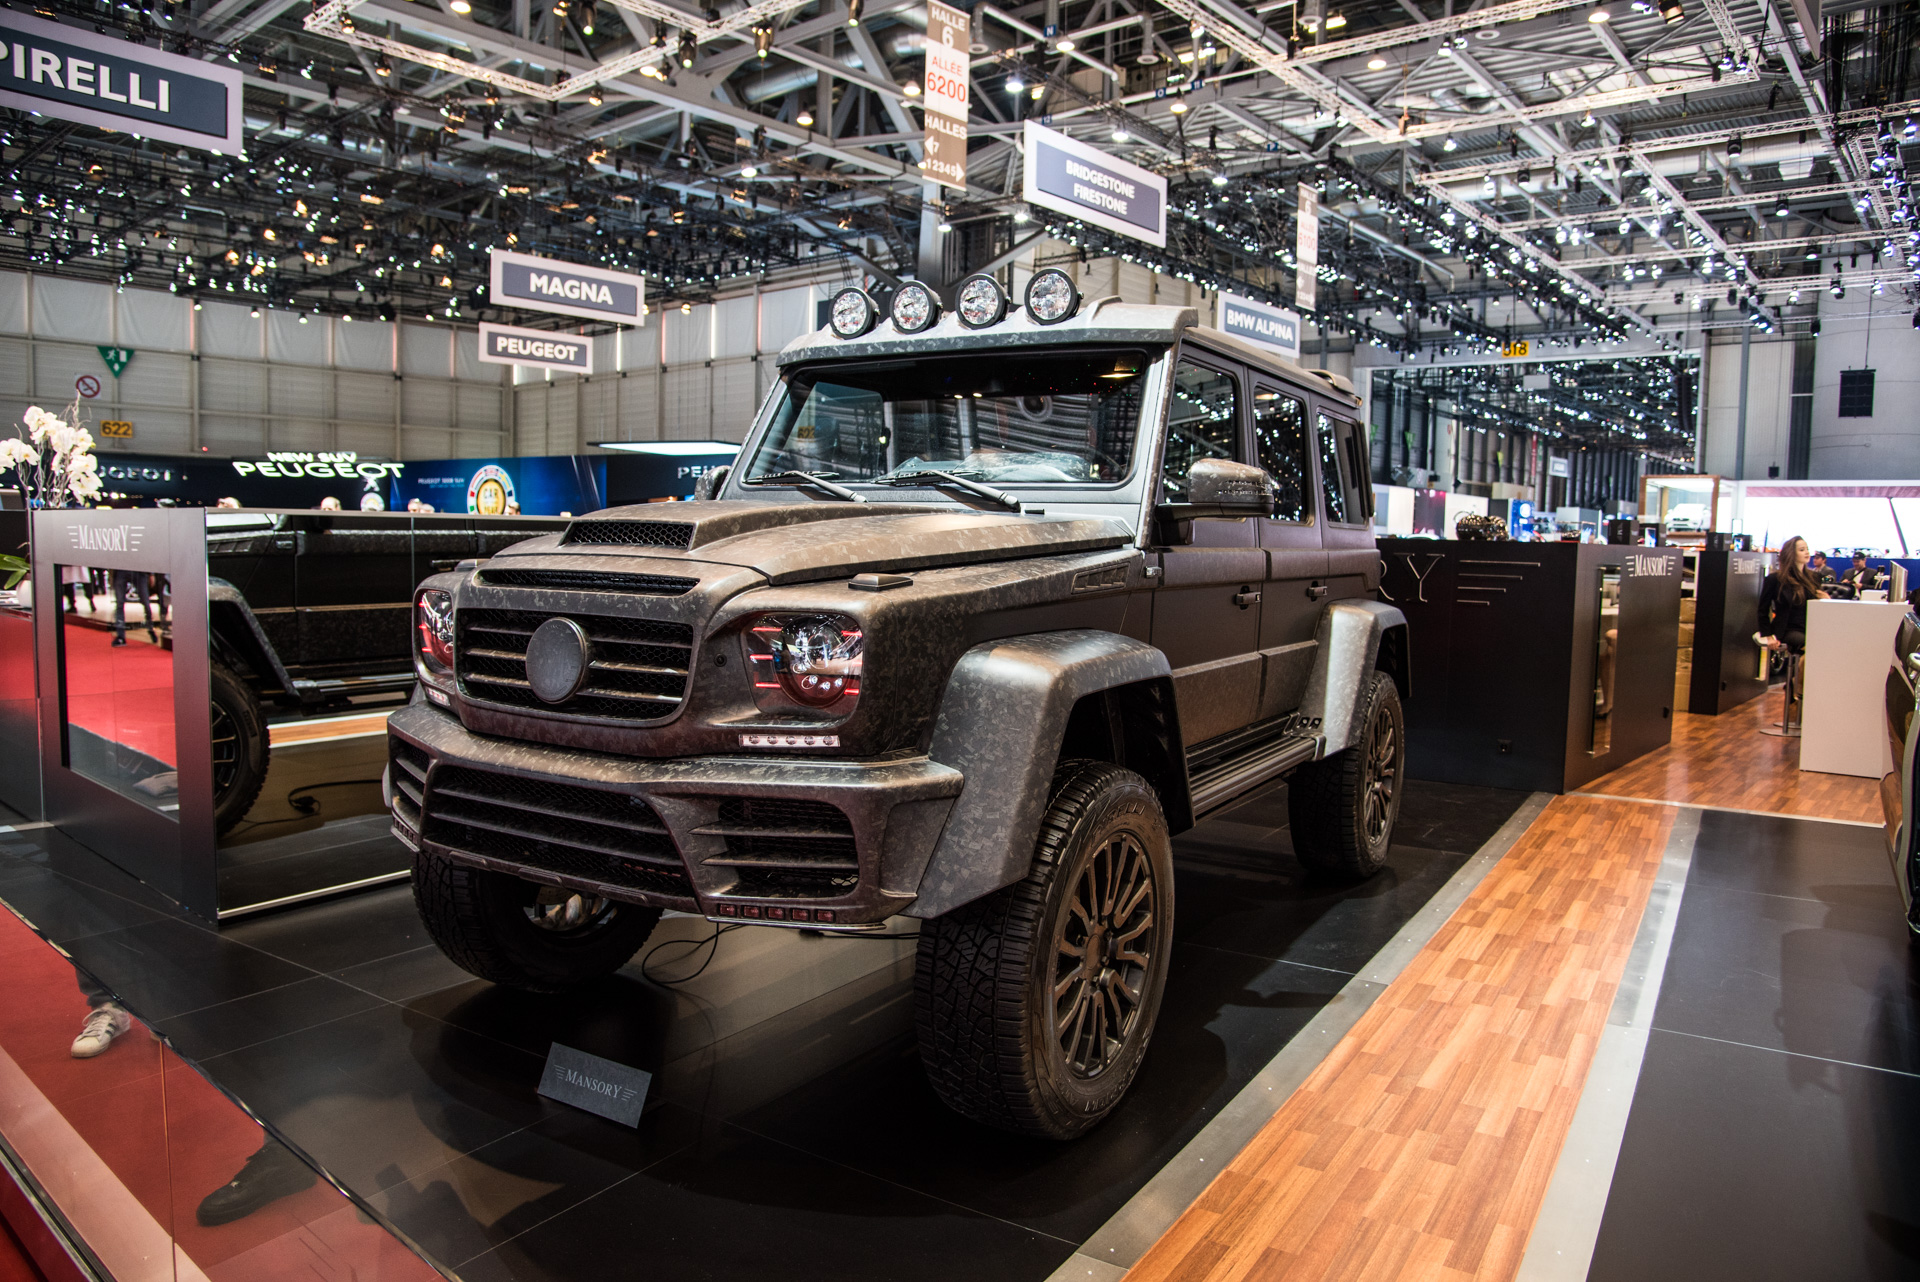 geneva-international-motor-show-igor-sinitsin-50